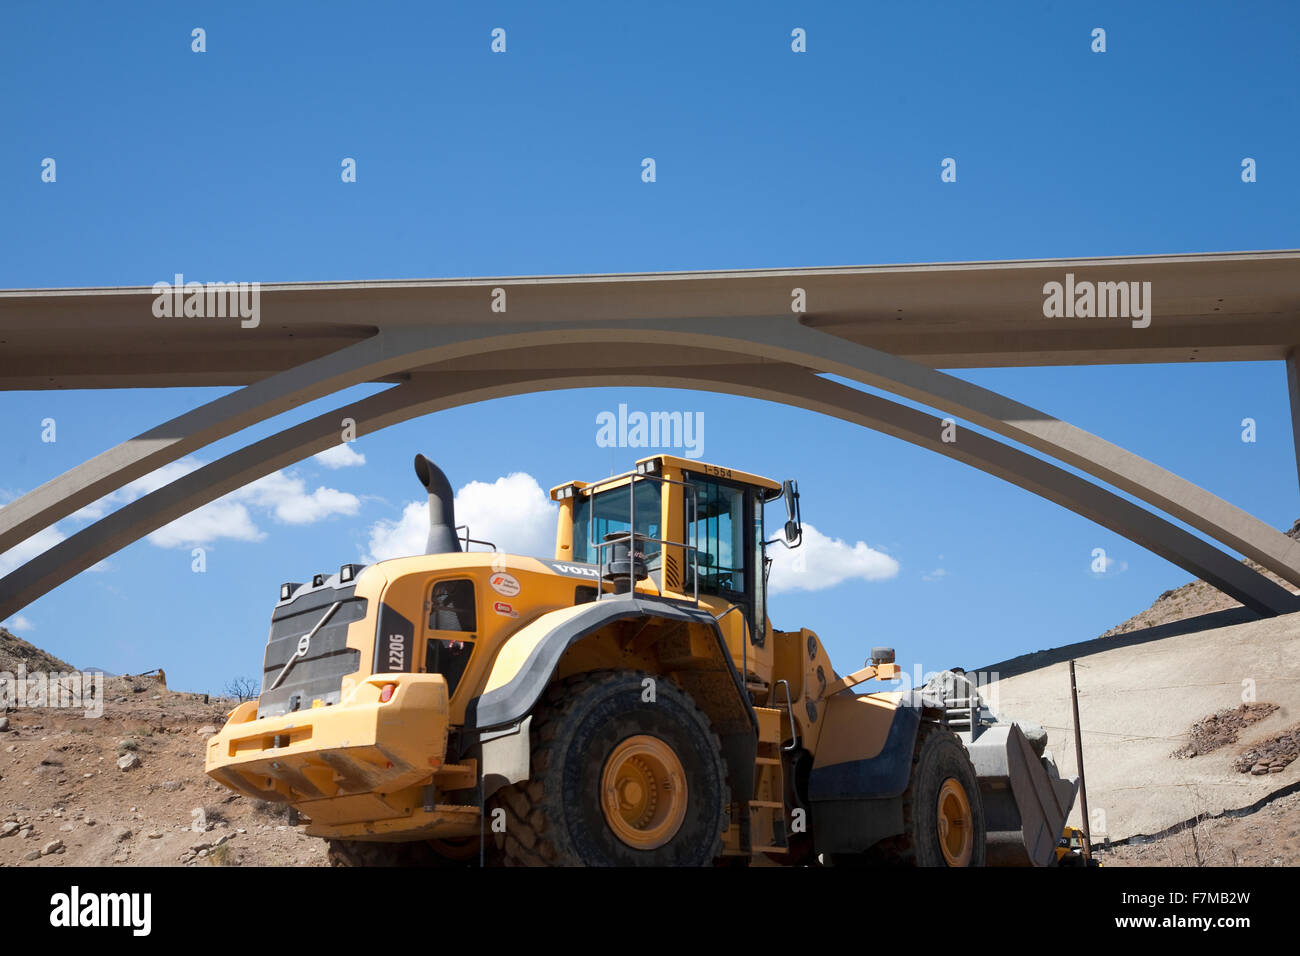 Construction Galena Creed twin-span concrete arch bridge along Route 395 and Interstate 580 in Washoe County, Nevada. - Stock Image